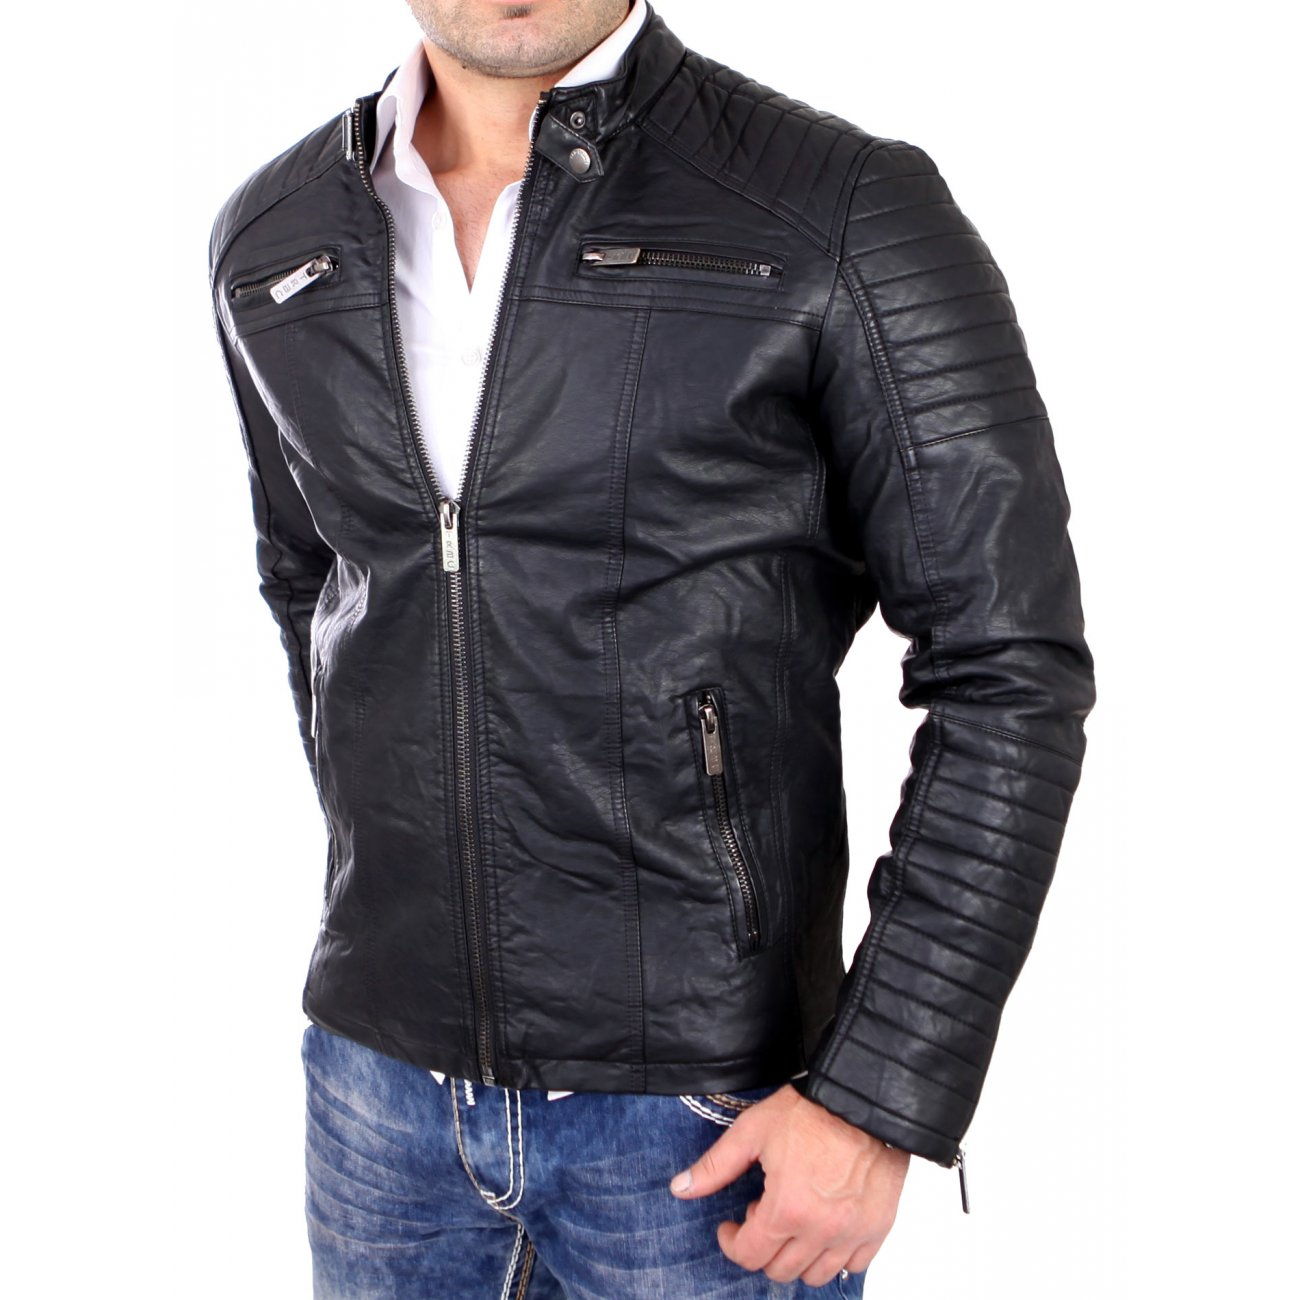 redbridge lederjacke herren kunst lederjacke bikerjacke rb 6013 schw. Black Bedroom Furniture Sets. Home Design Ideas